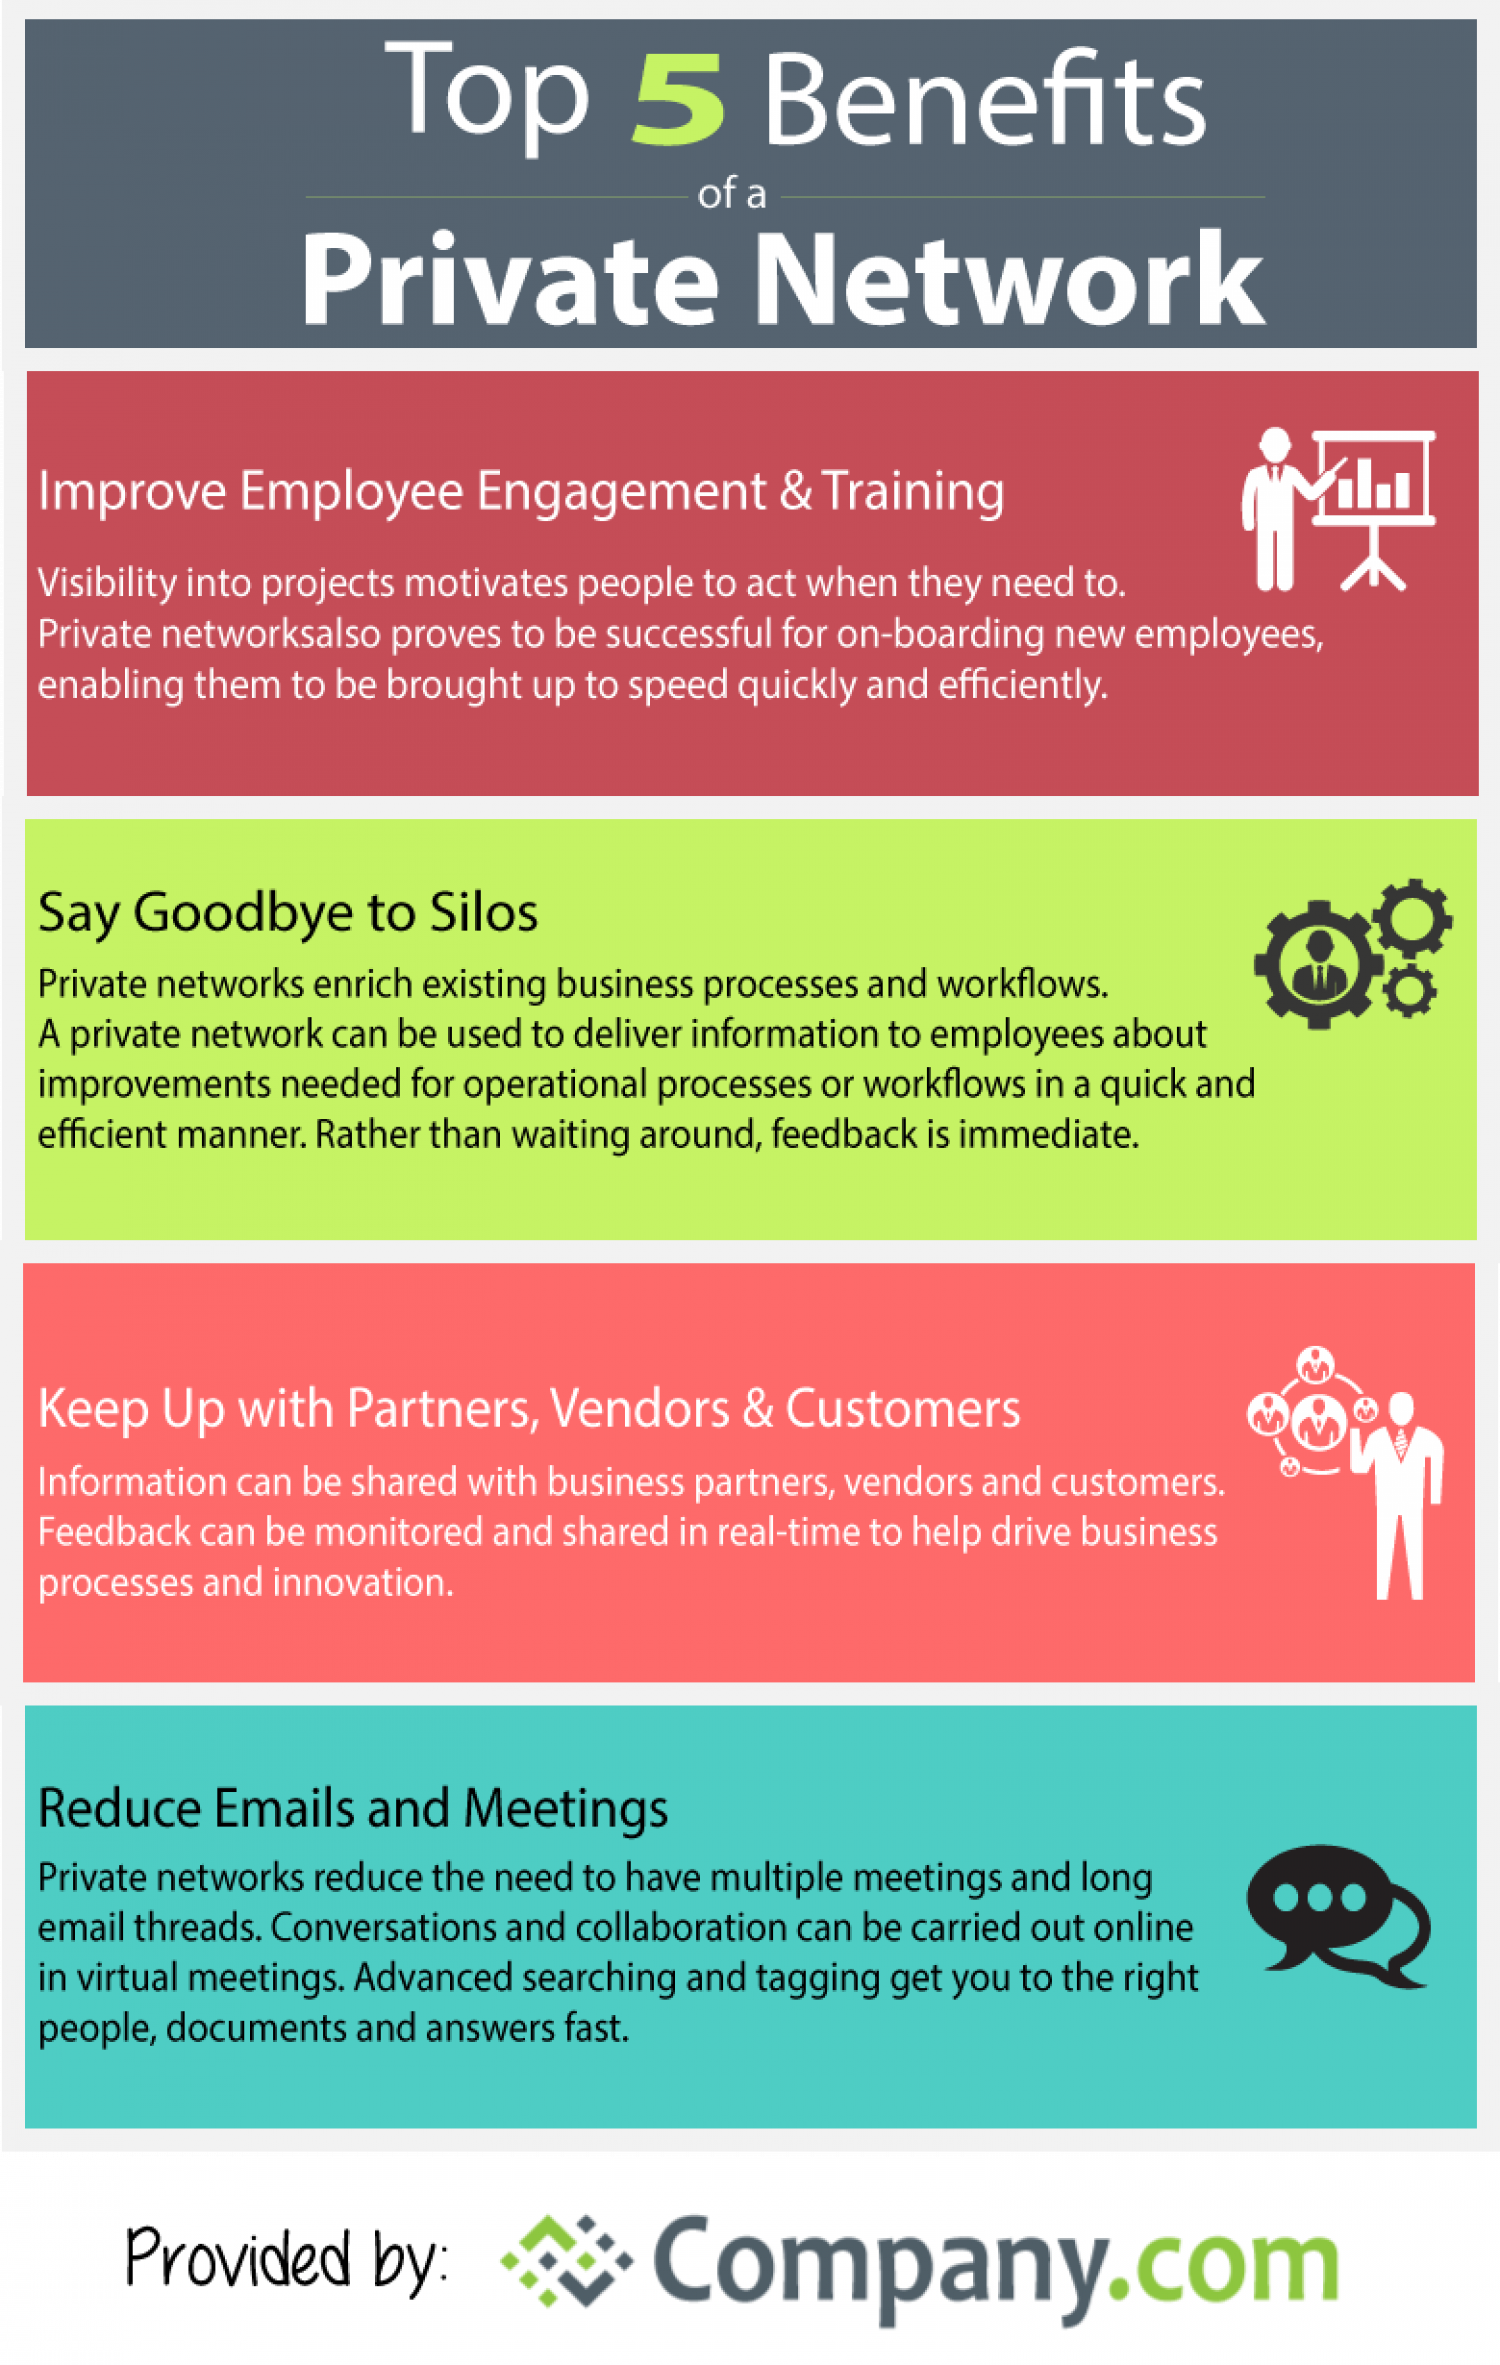 Top 5 Benefits of a Private Network Infographic